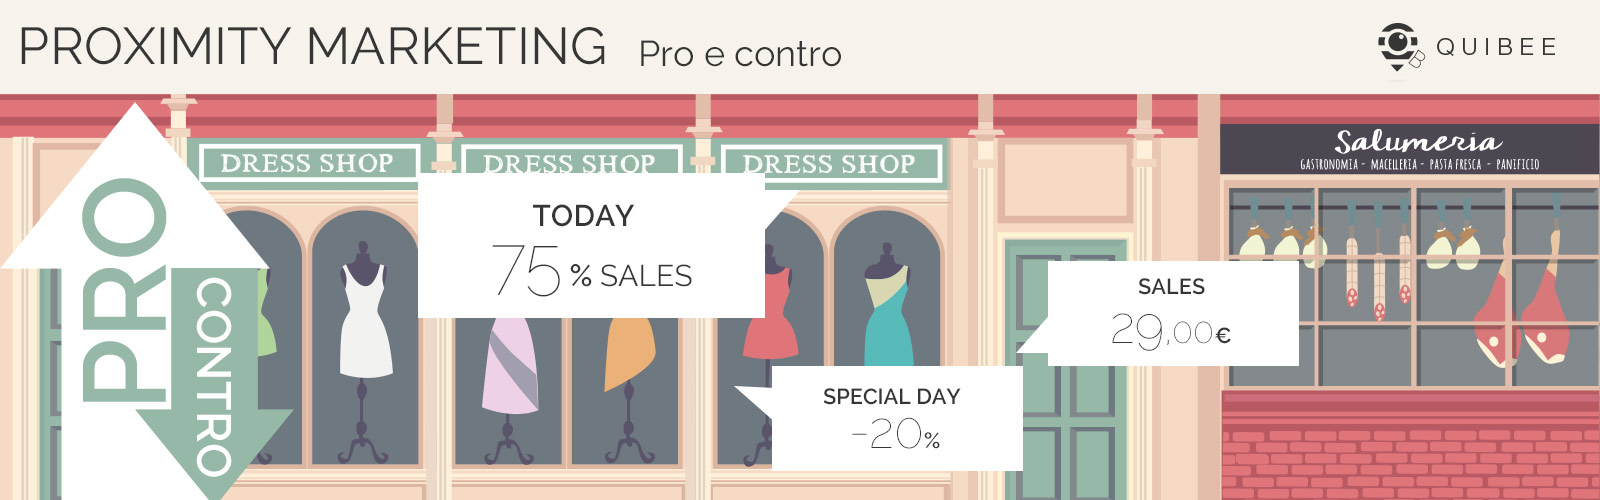 Proximity marketing: Pro e Contro